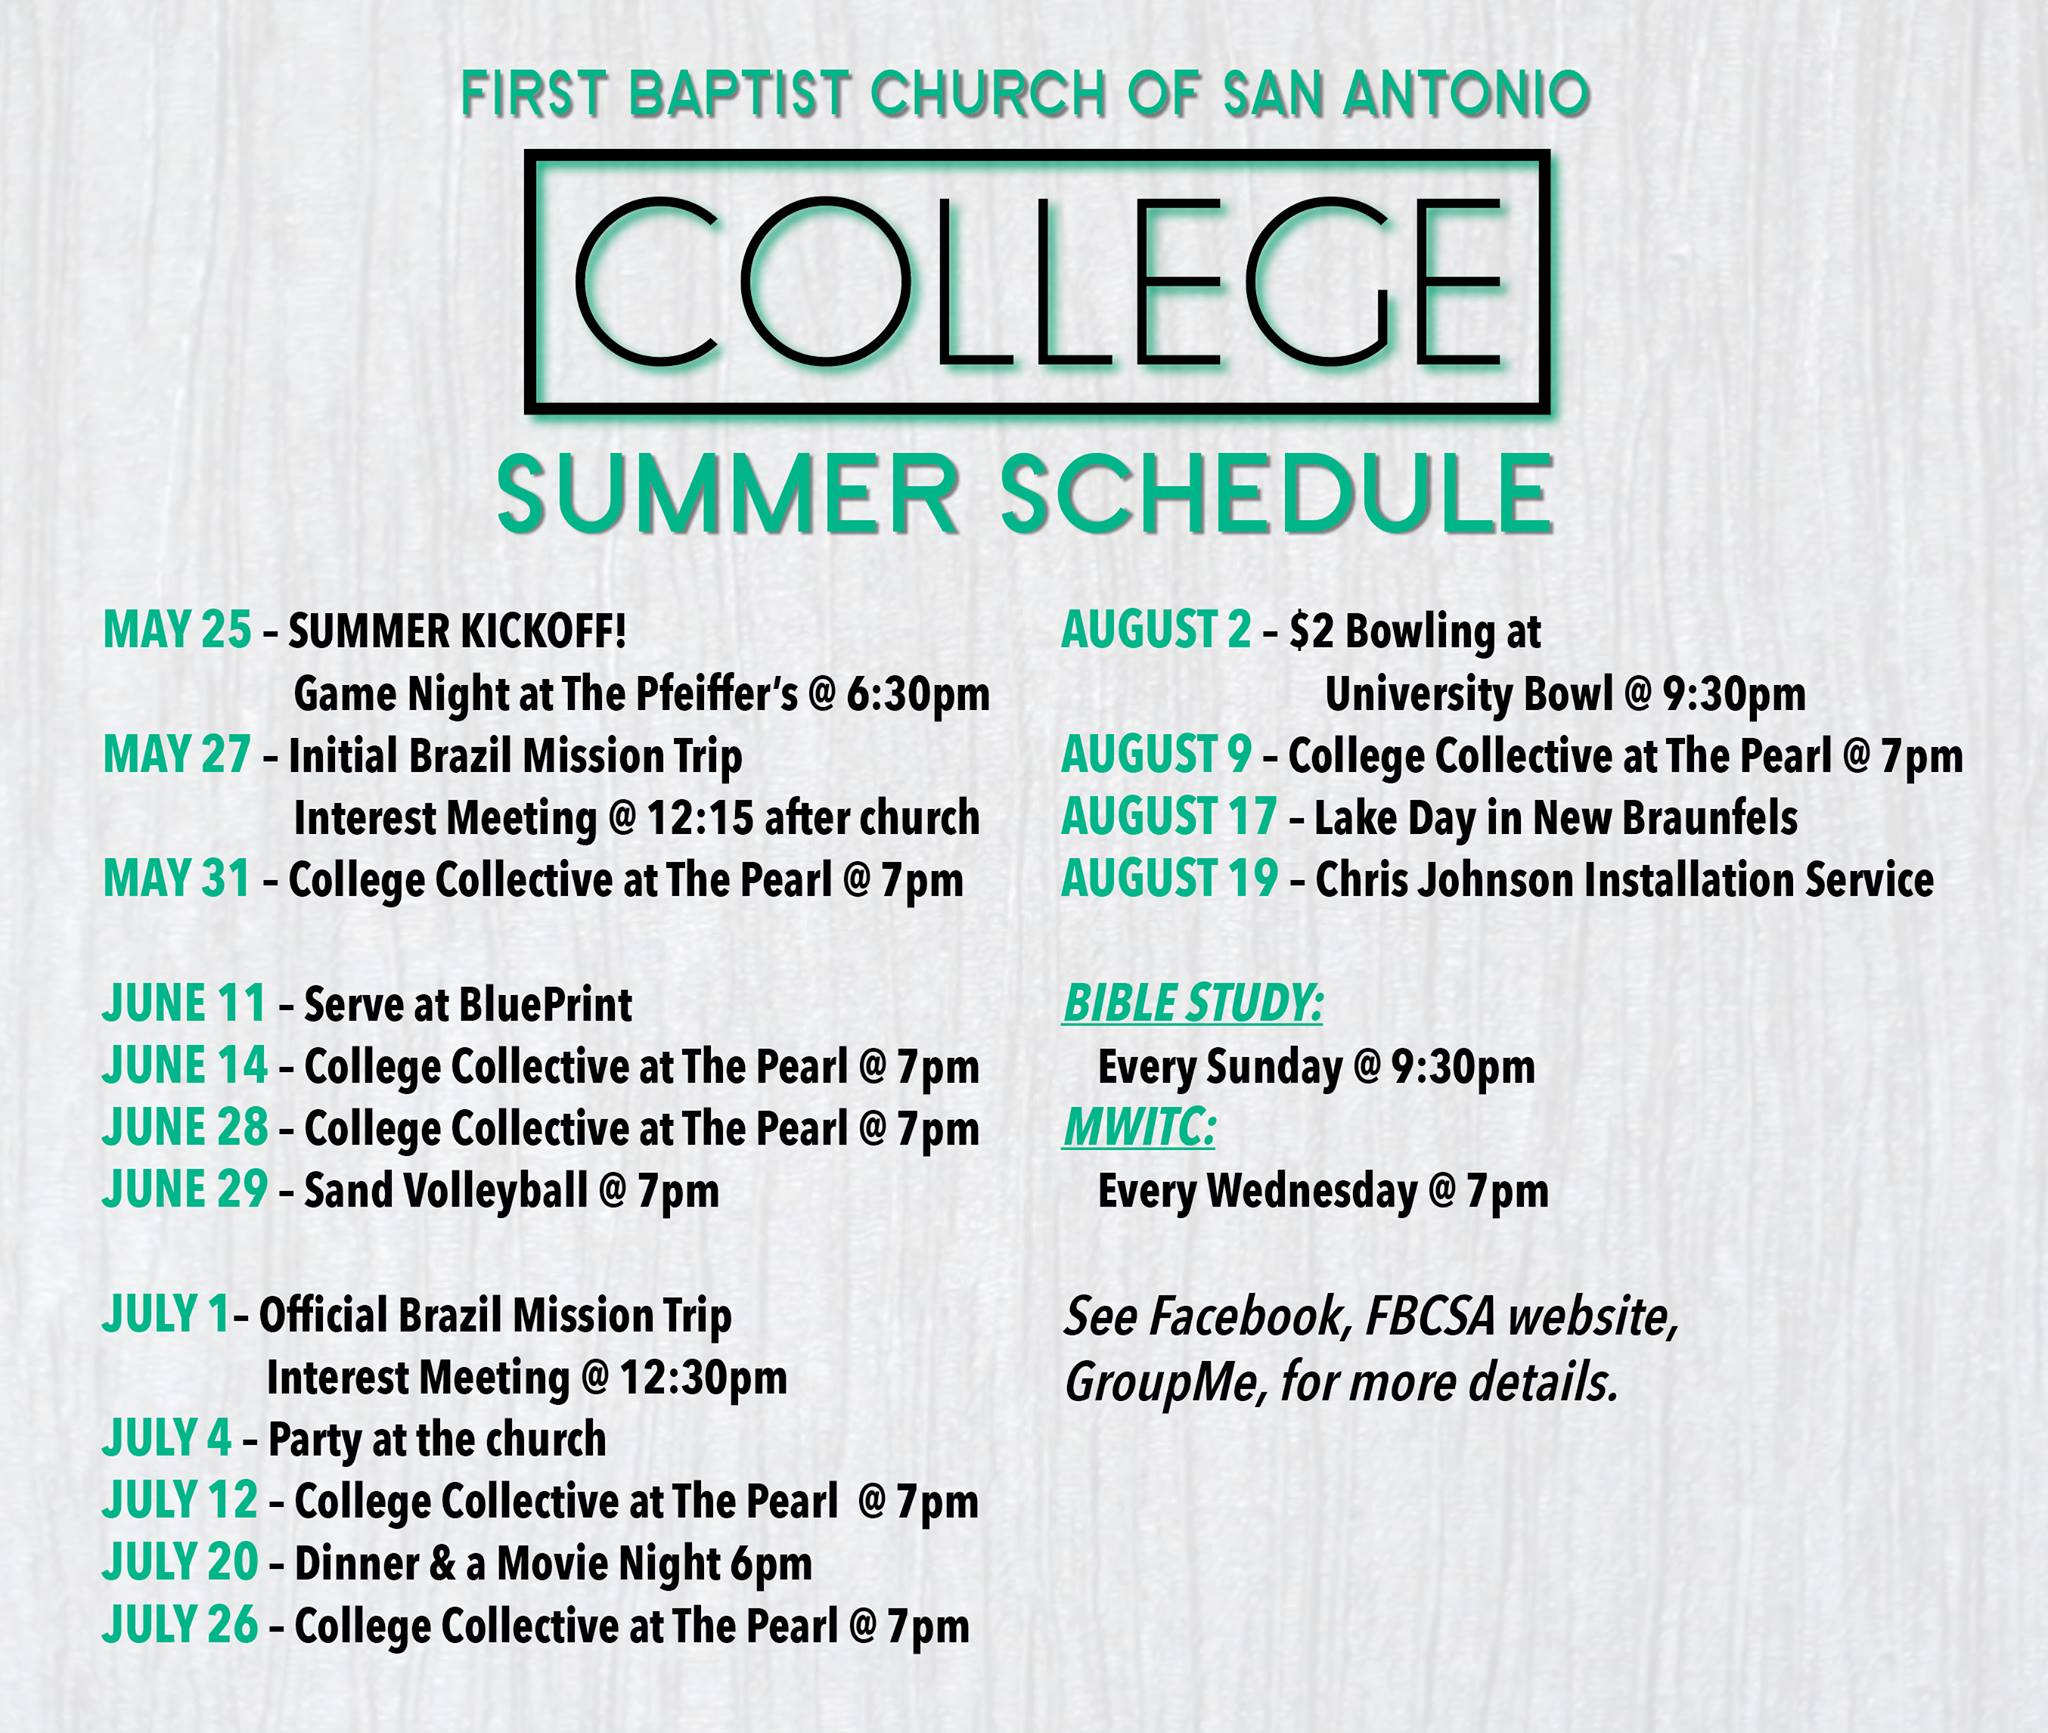 College ministry first baptist church san antonio the college ministry of fbcsa is building a family of friendship and faith so that together we can worship god follows jesus and represent gods kingdom malvernweather Image collections